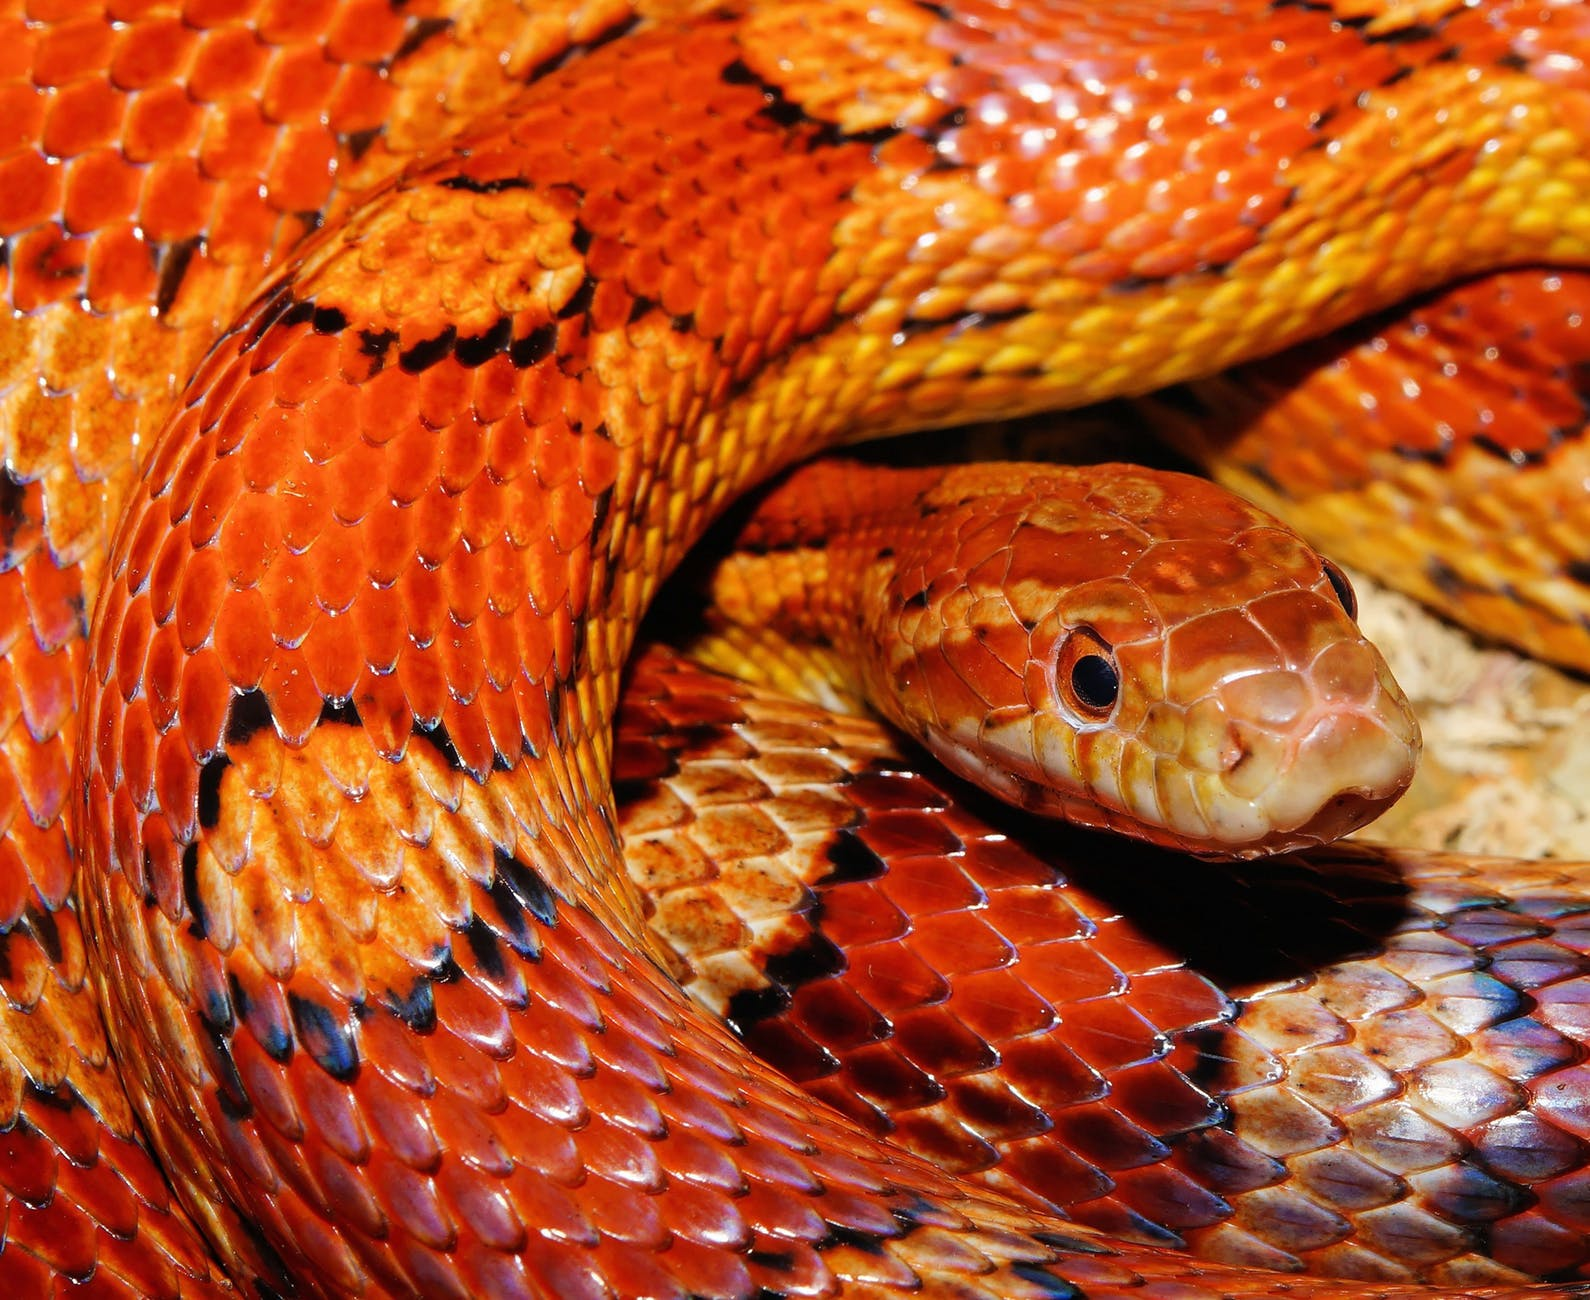 orange head reptile portrait